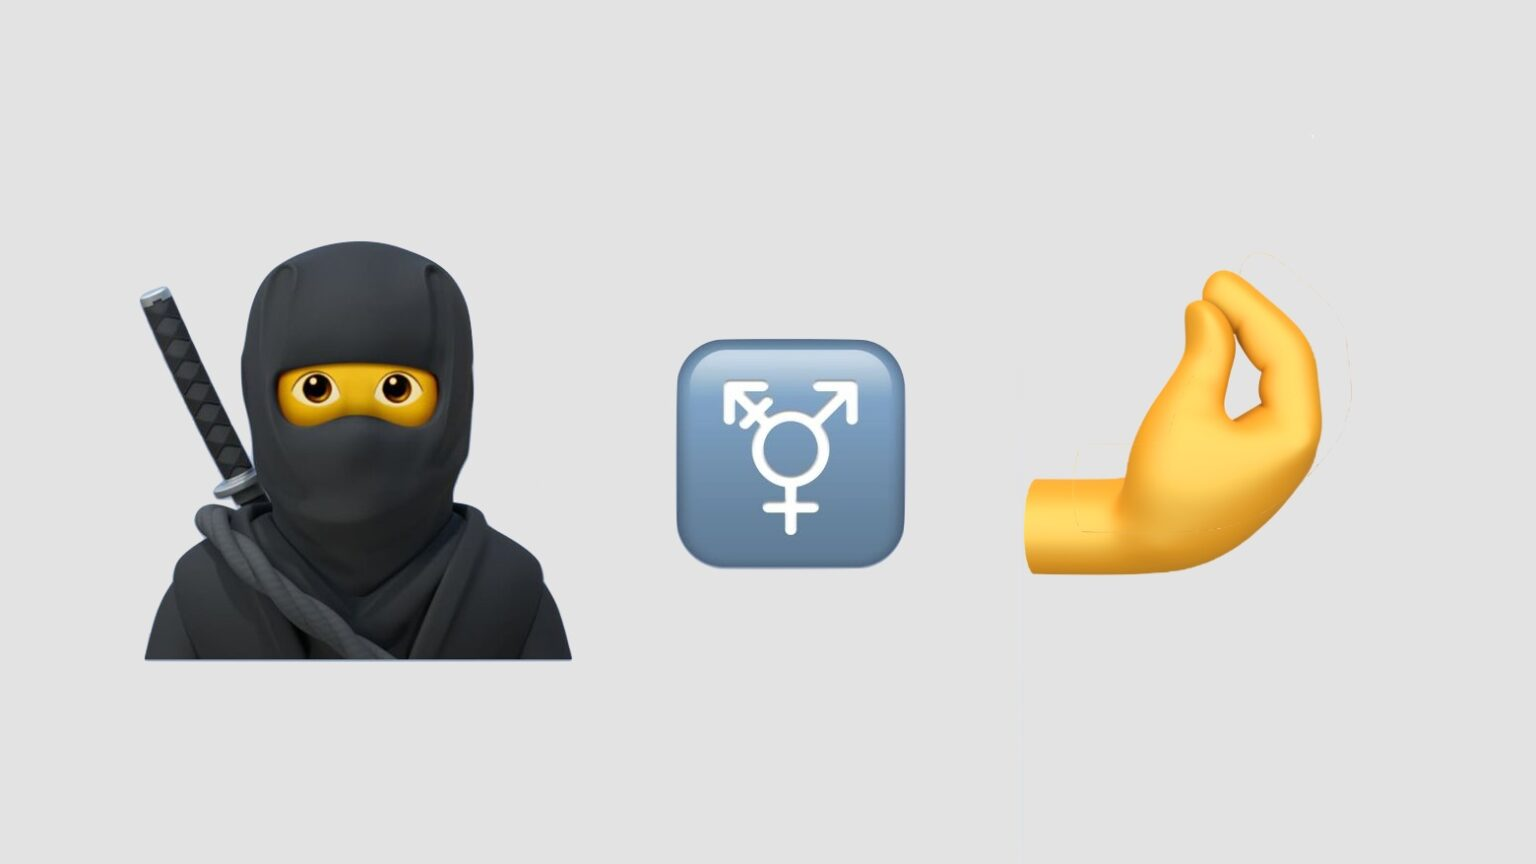 iOS 14 emoji include a ninja, the transgender symbol, and an Italian gesture.